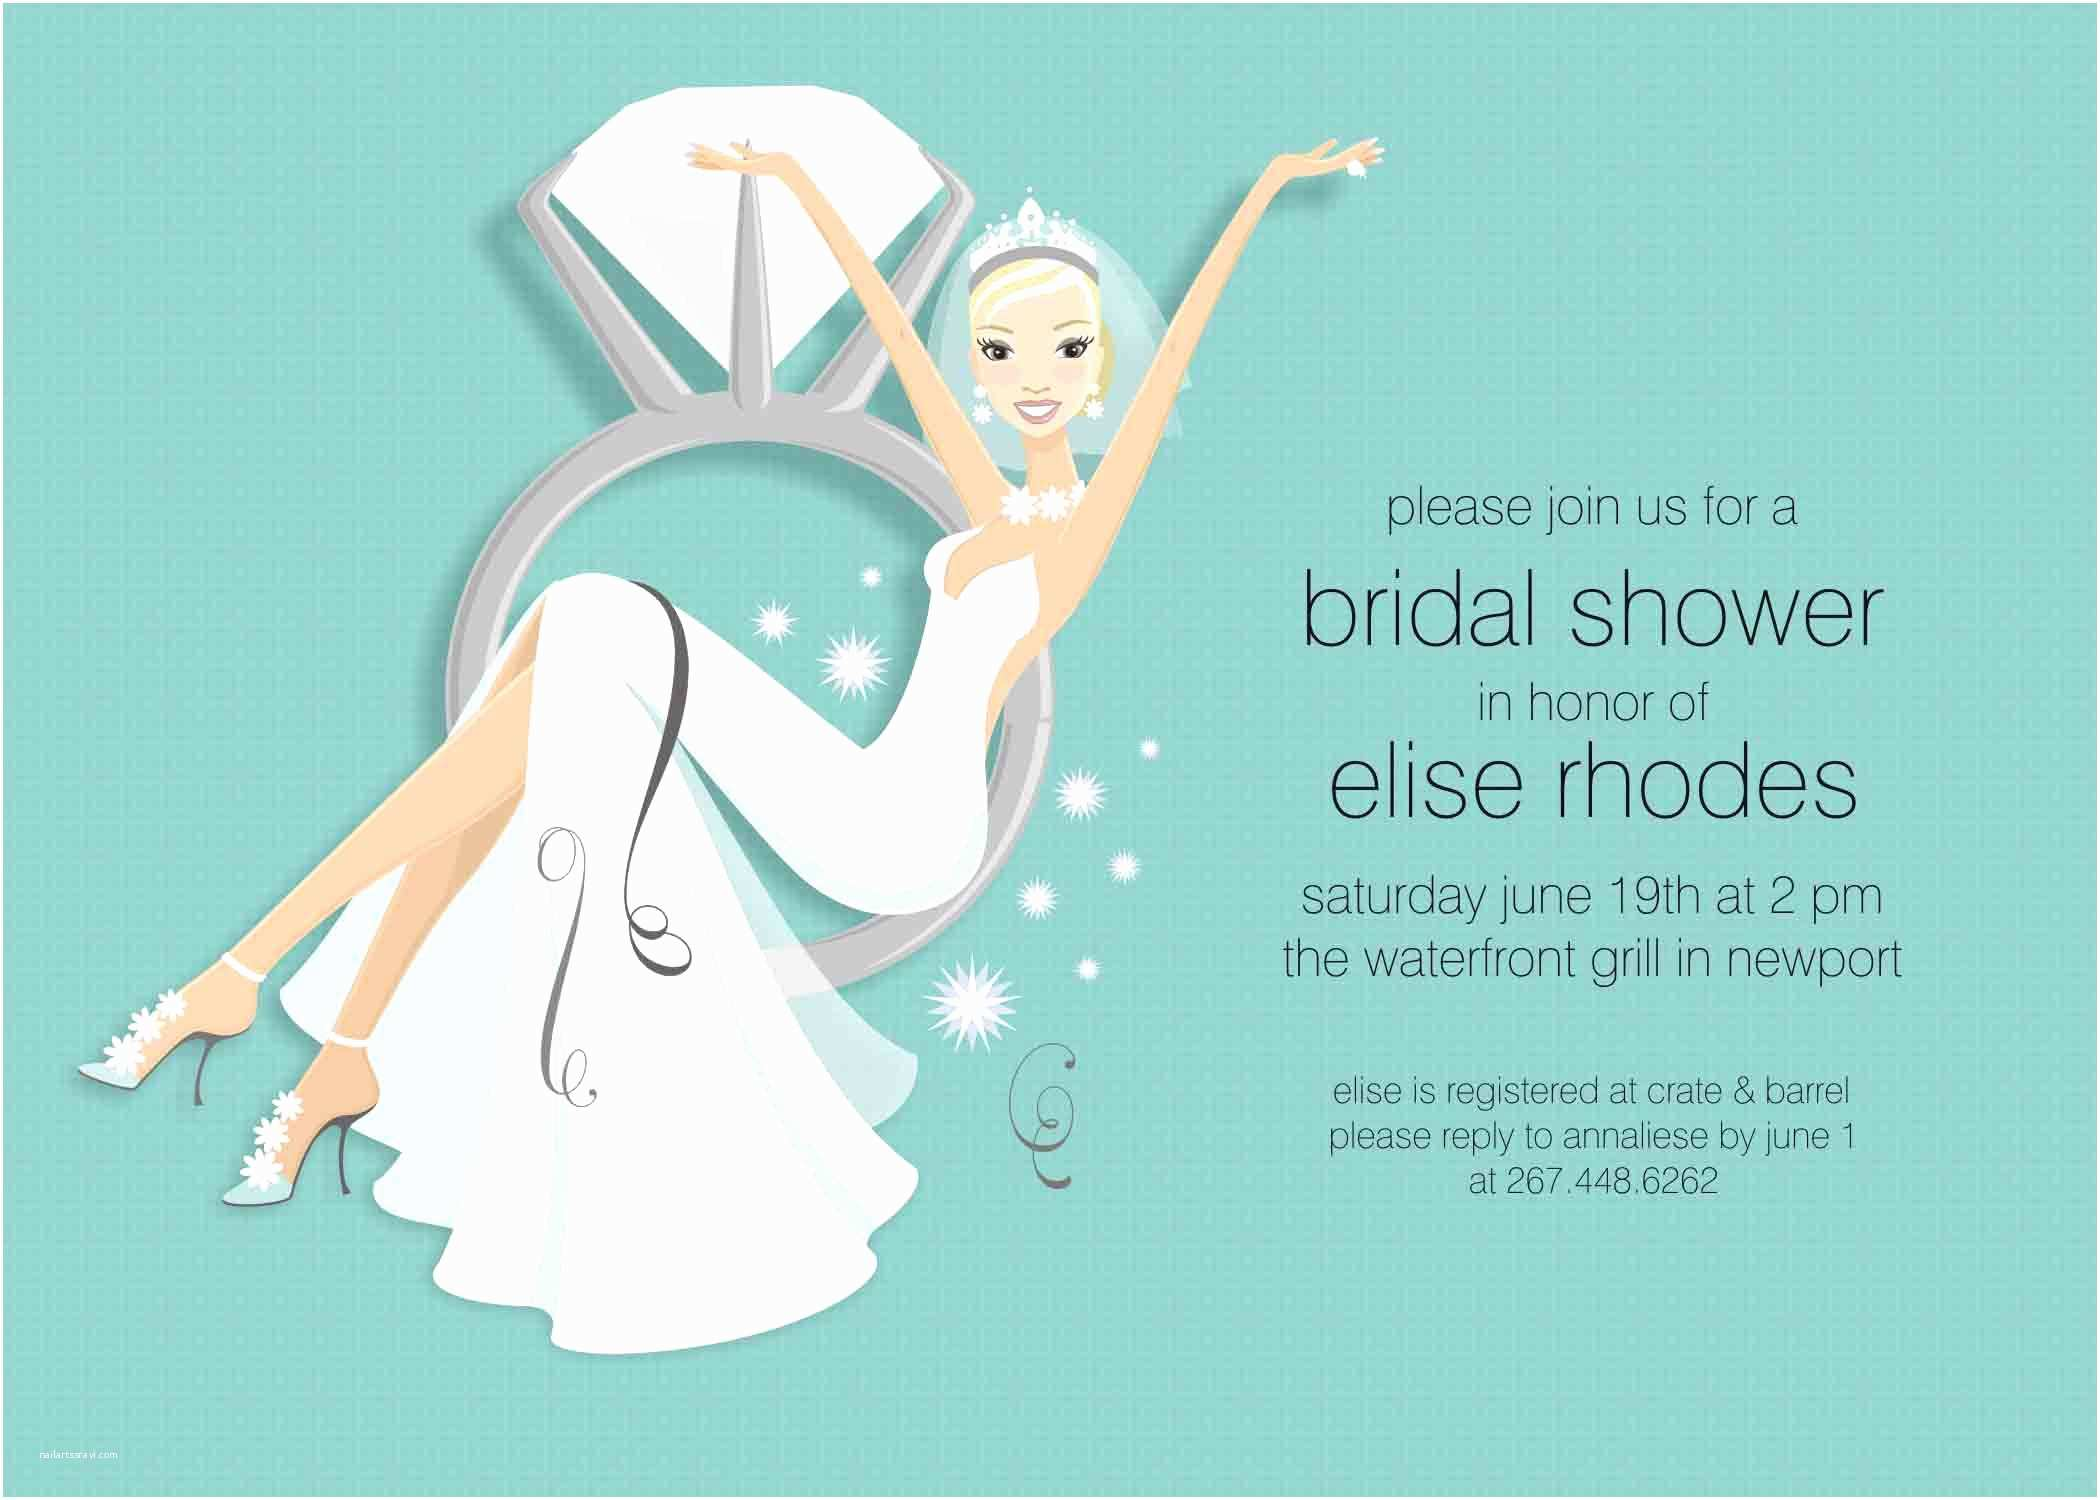 Bridal Shower Invitations Cheap How to Get Cheap Bridal Shower Invitations